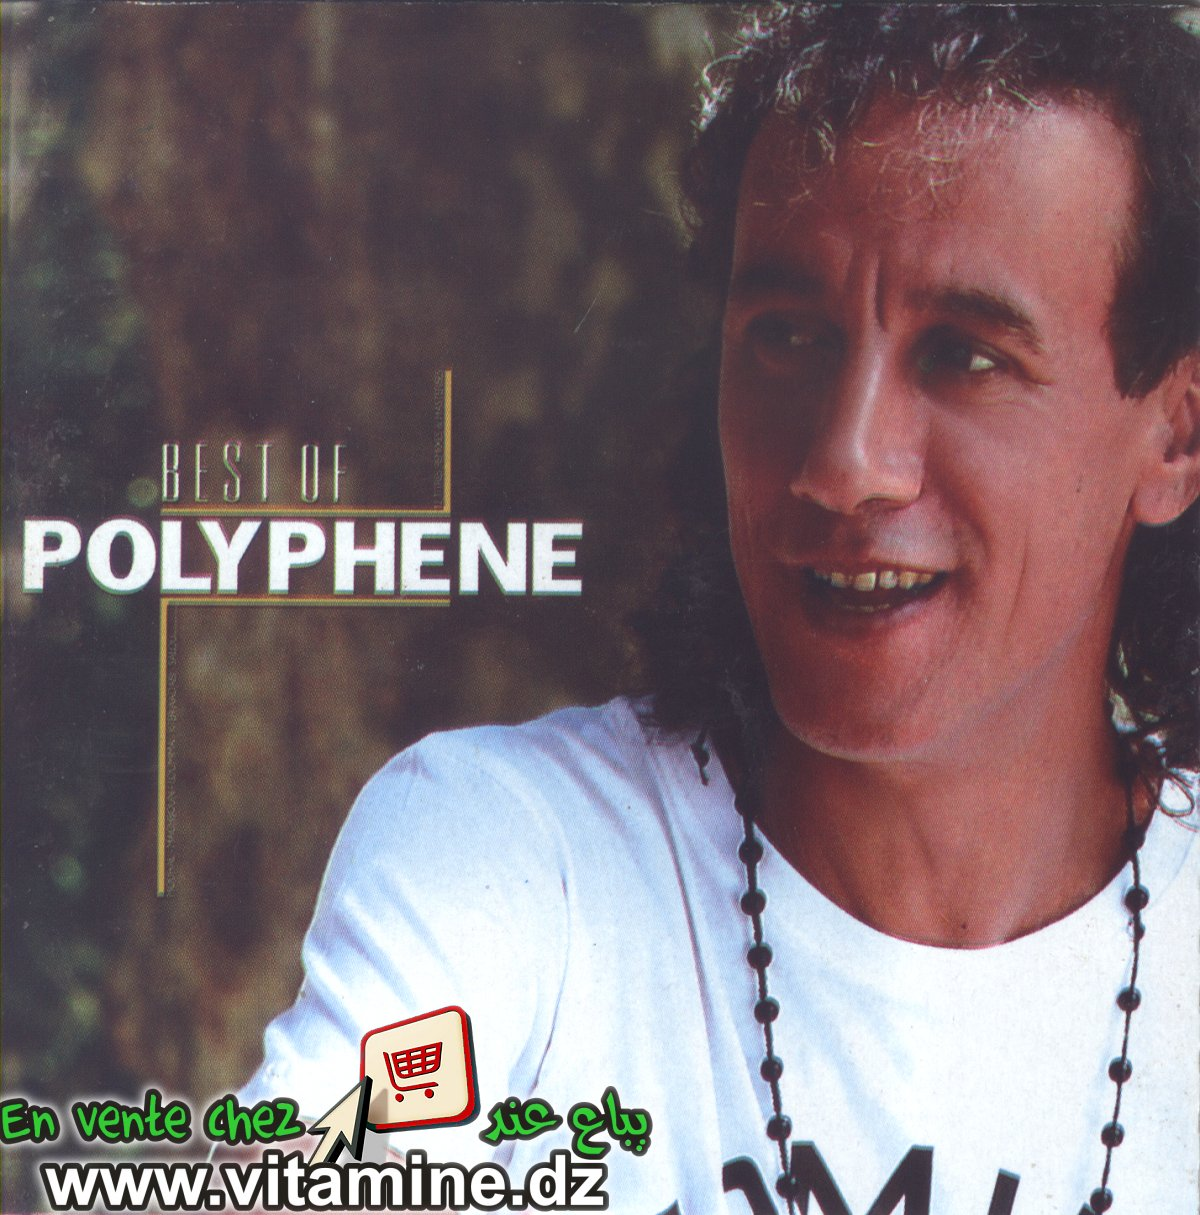 Polyphene best of